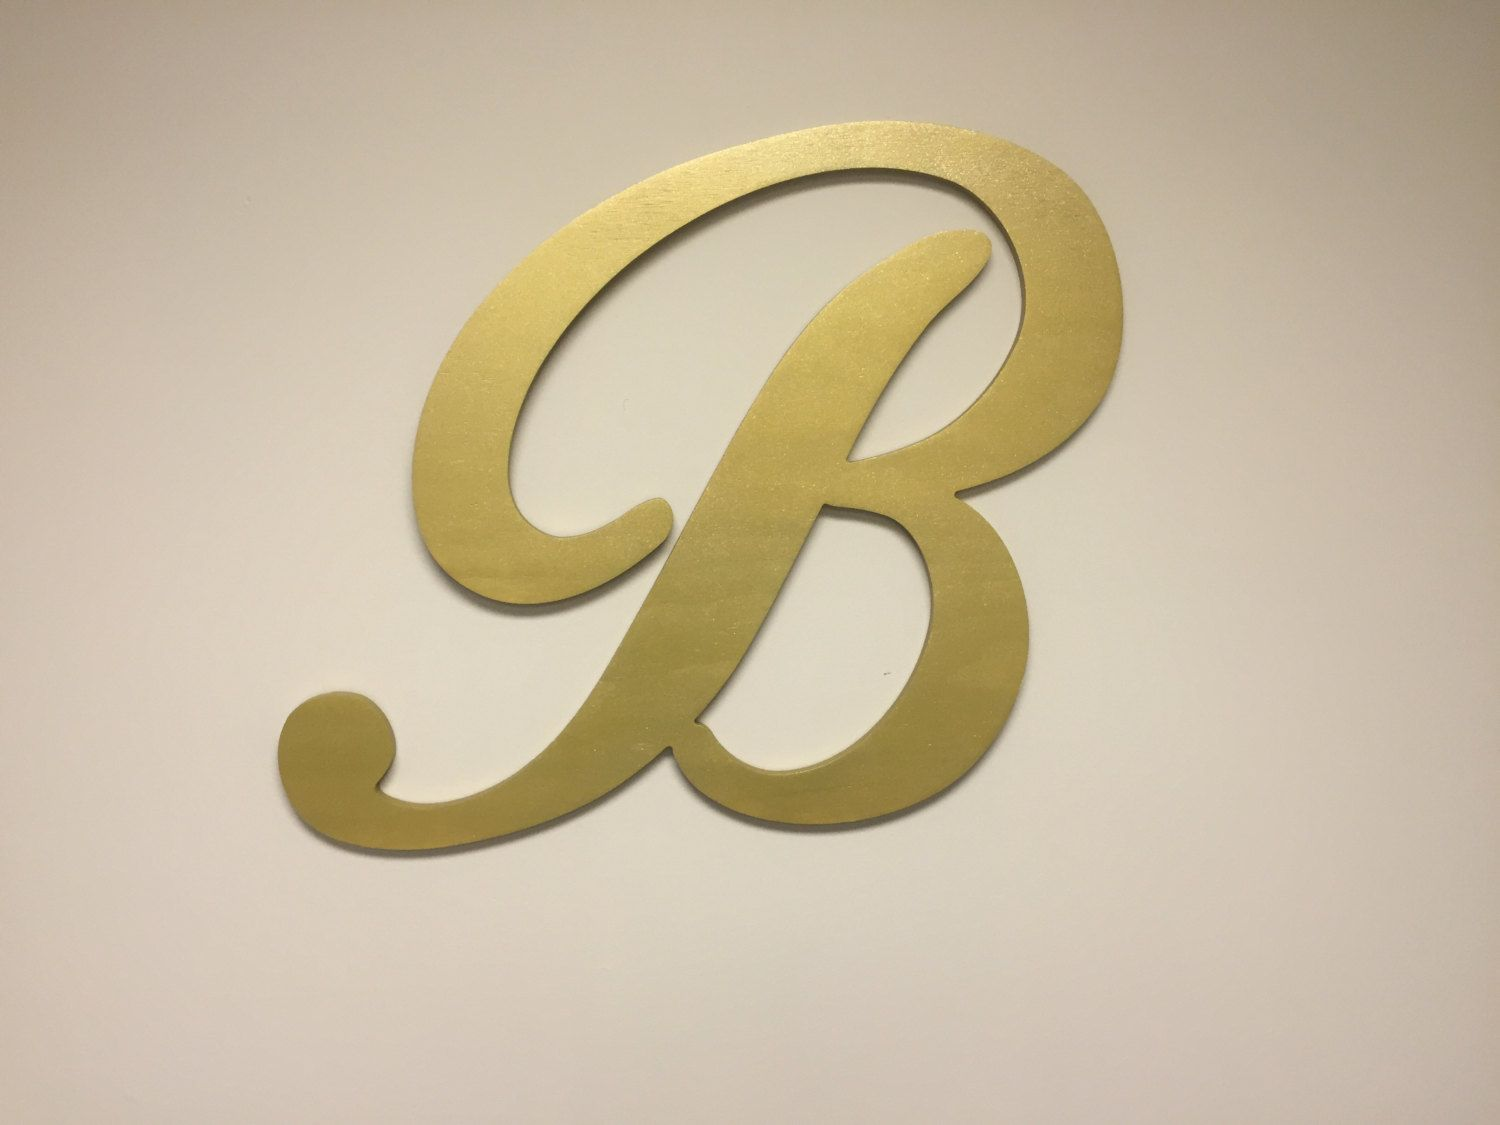 Gold Hanging Letters Gold Letter B Large Letter Decor Wood Wall Letters Home Wall